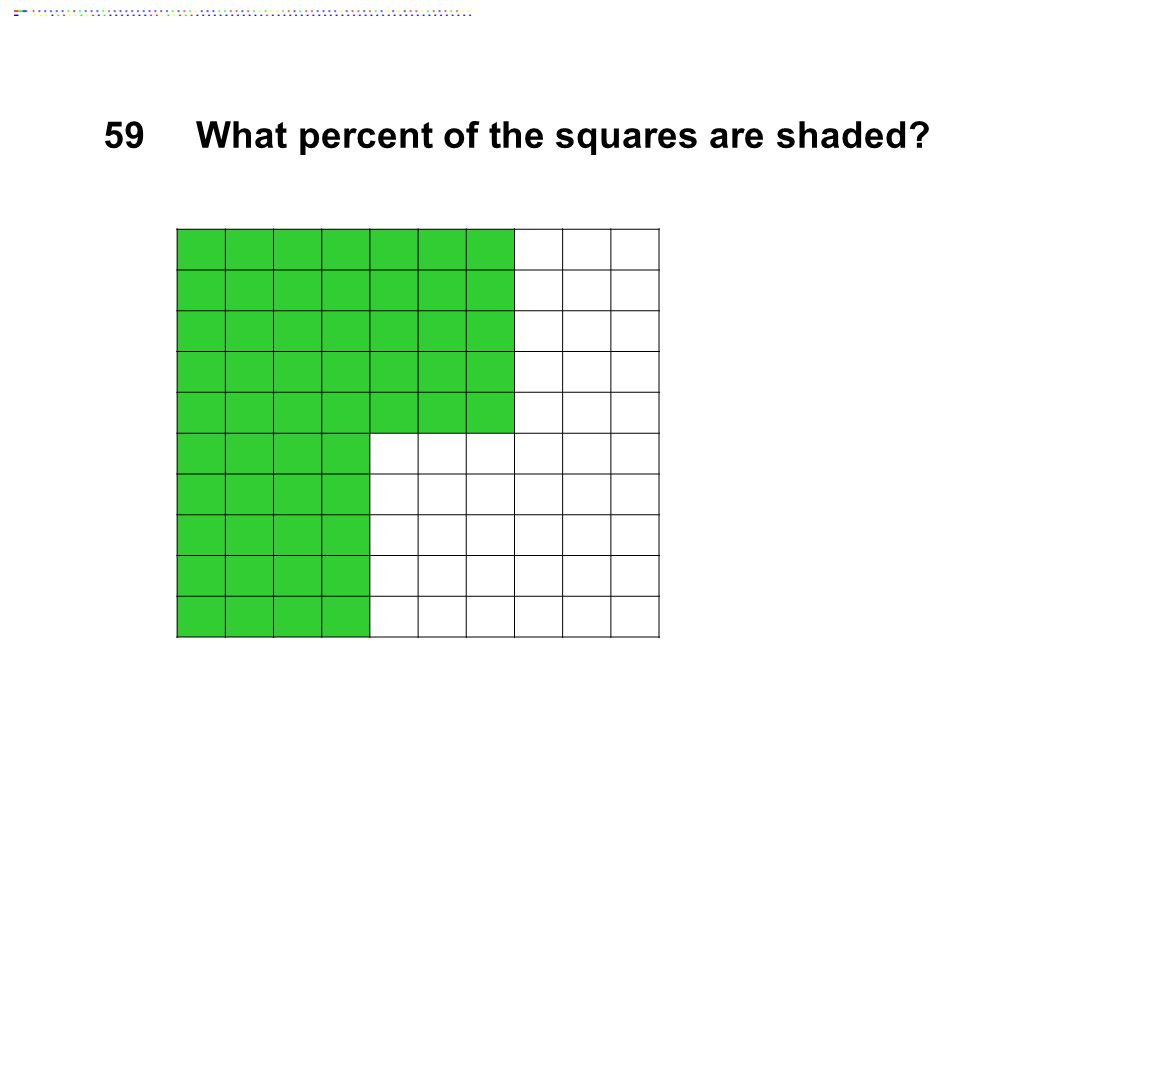 59What percent of the squares are shaded